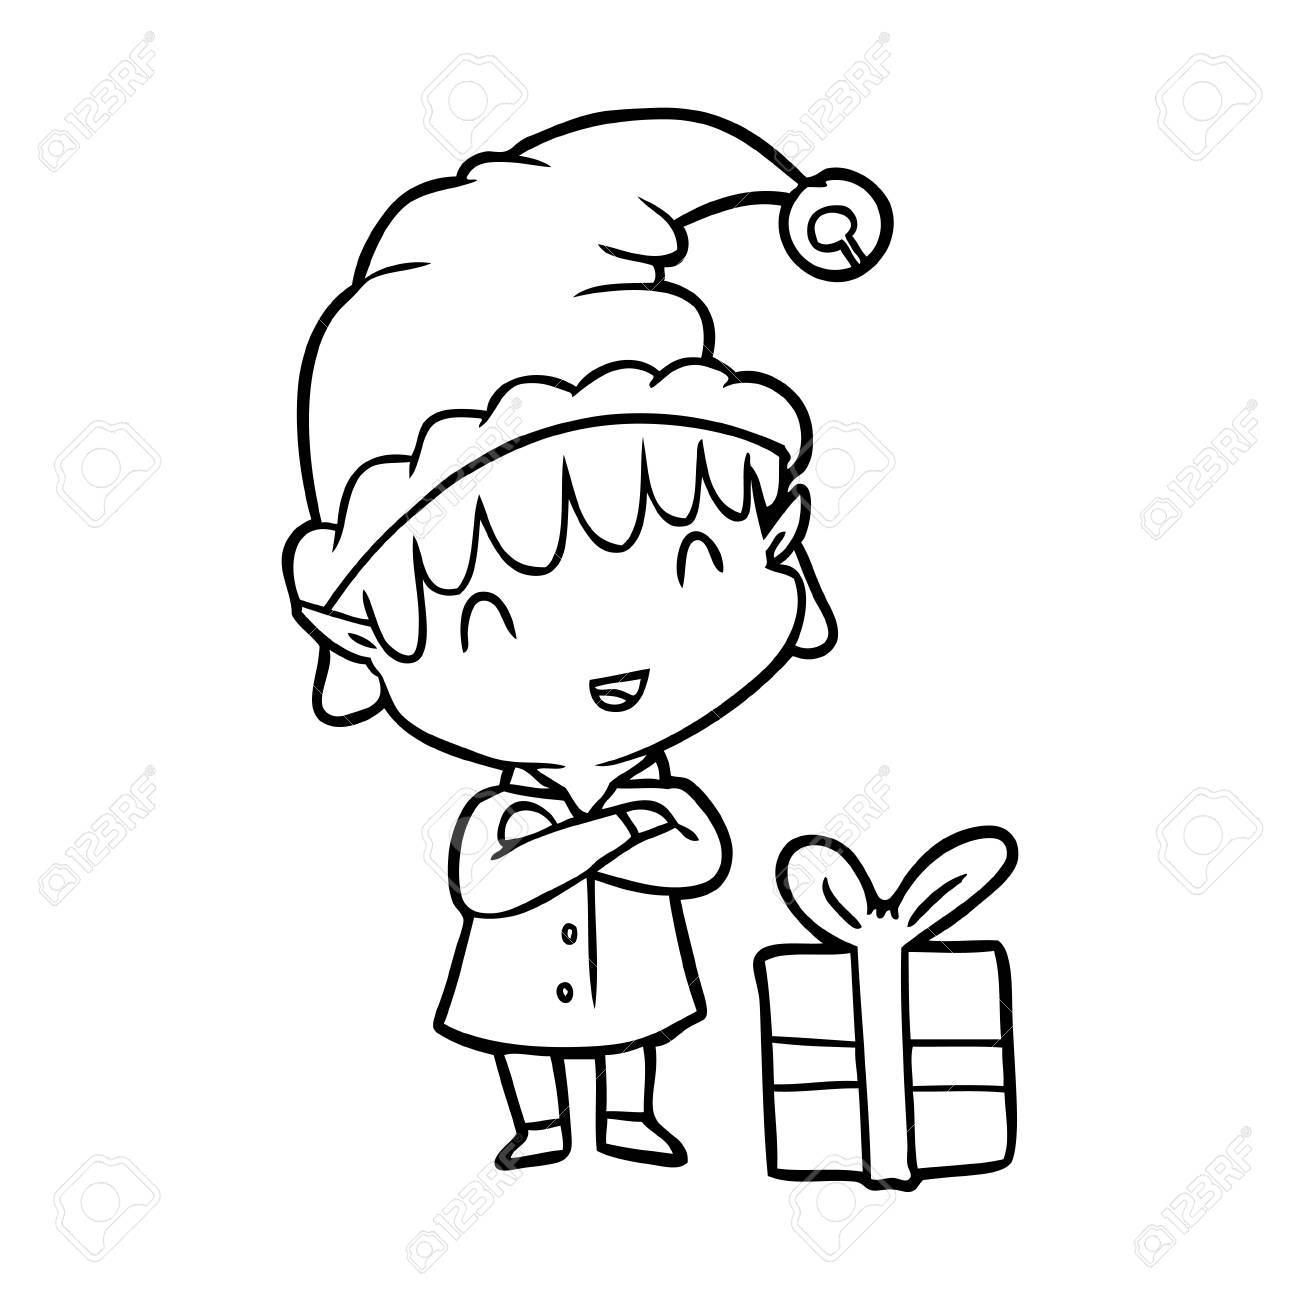 line drawing of a happy christmas elf